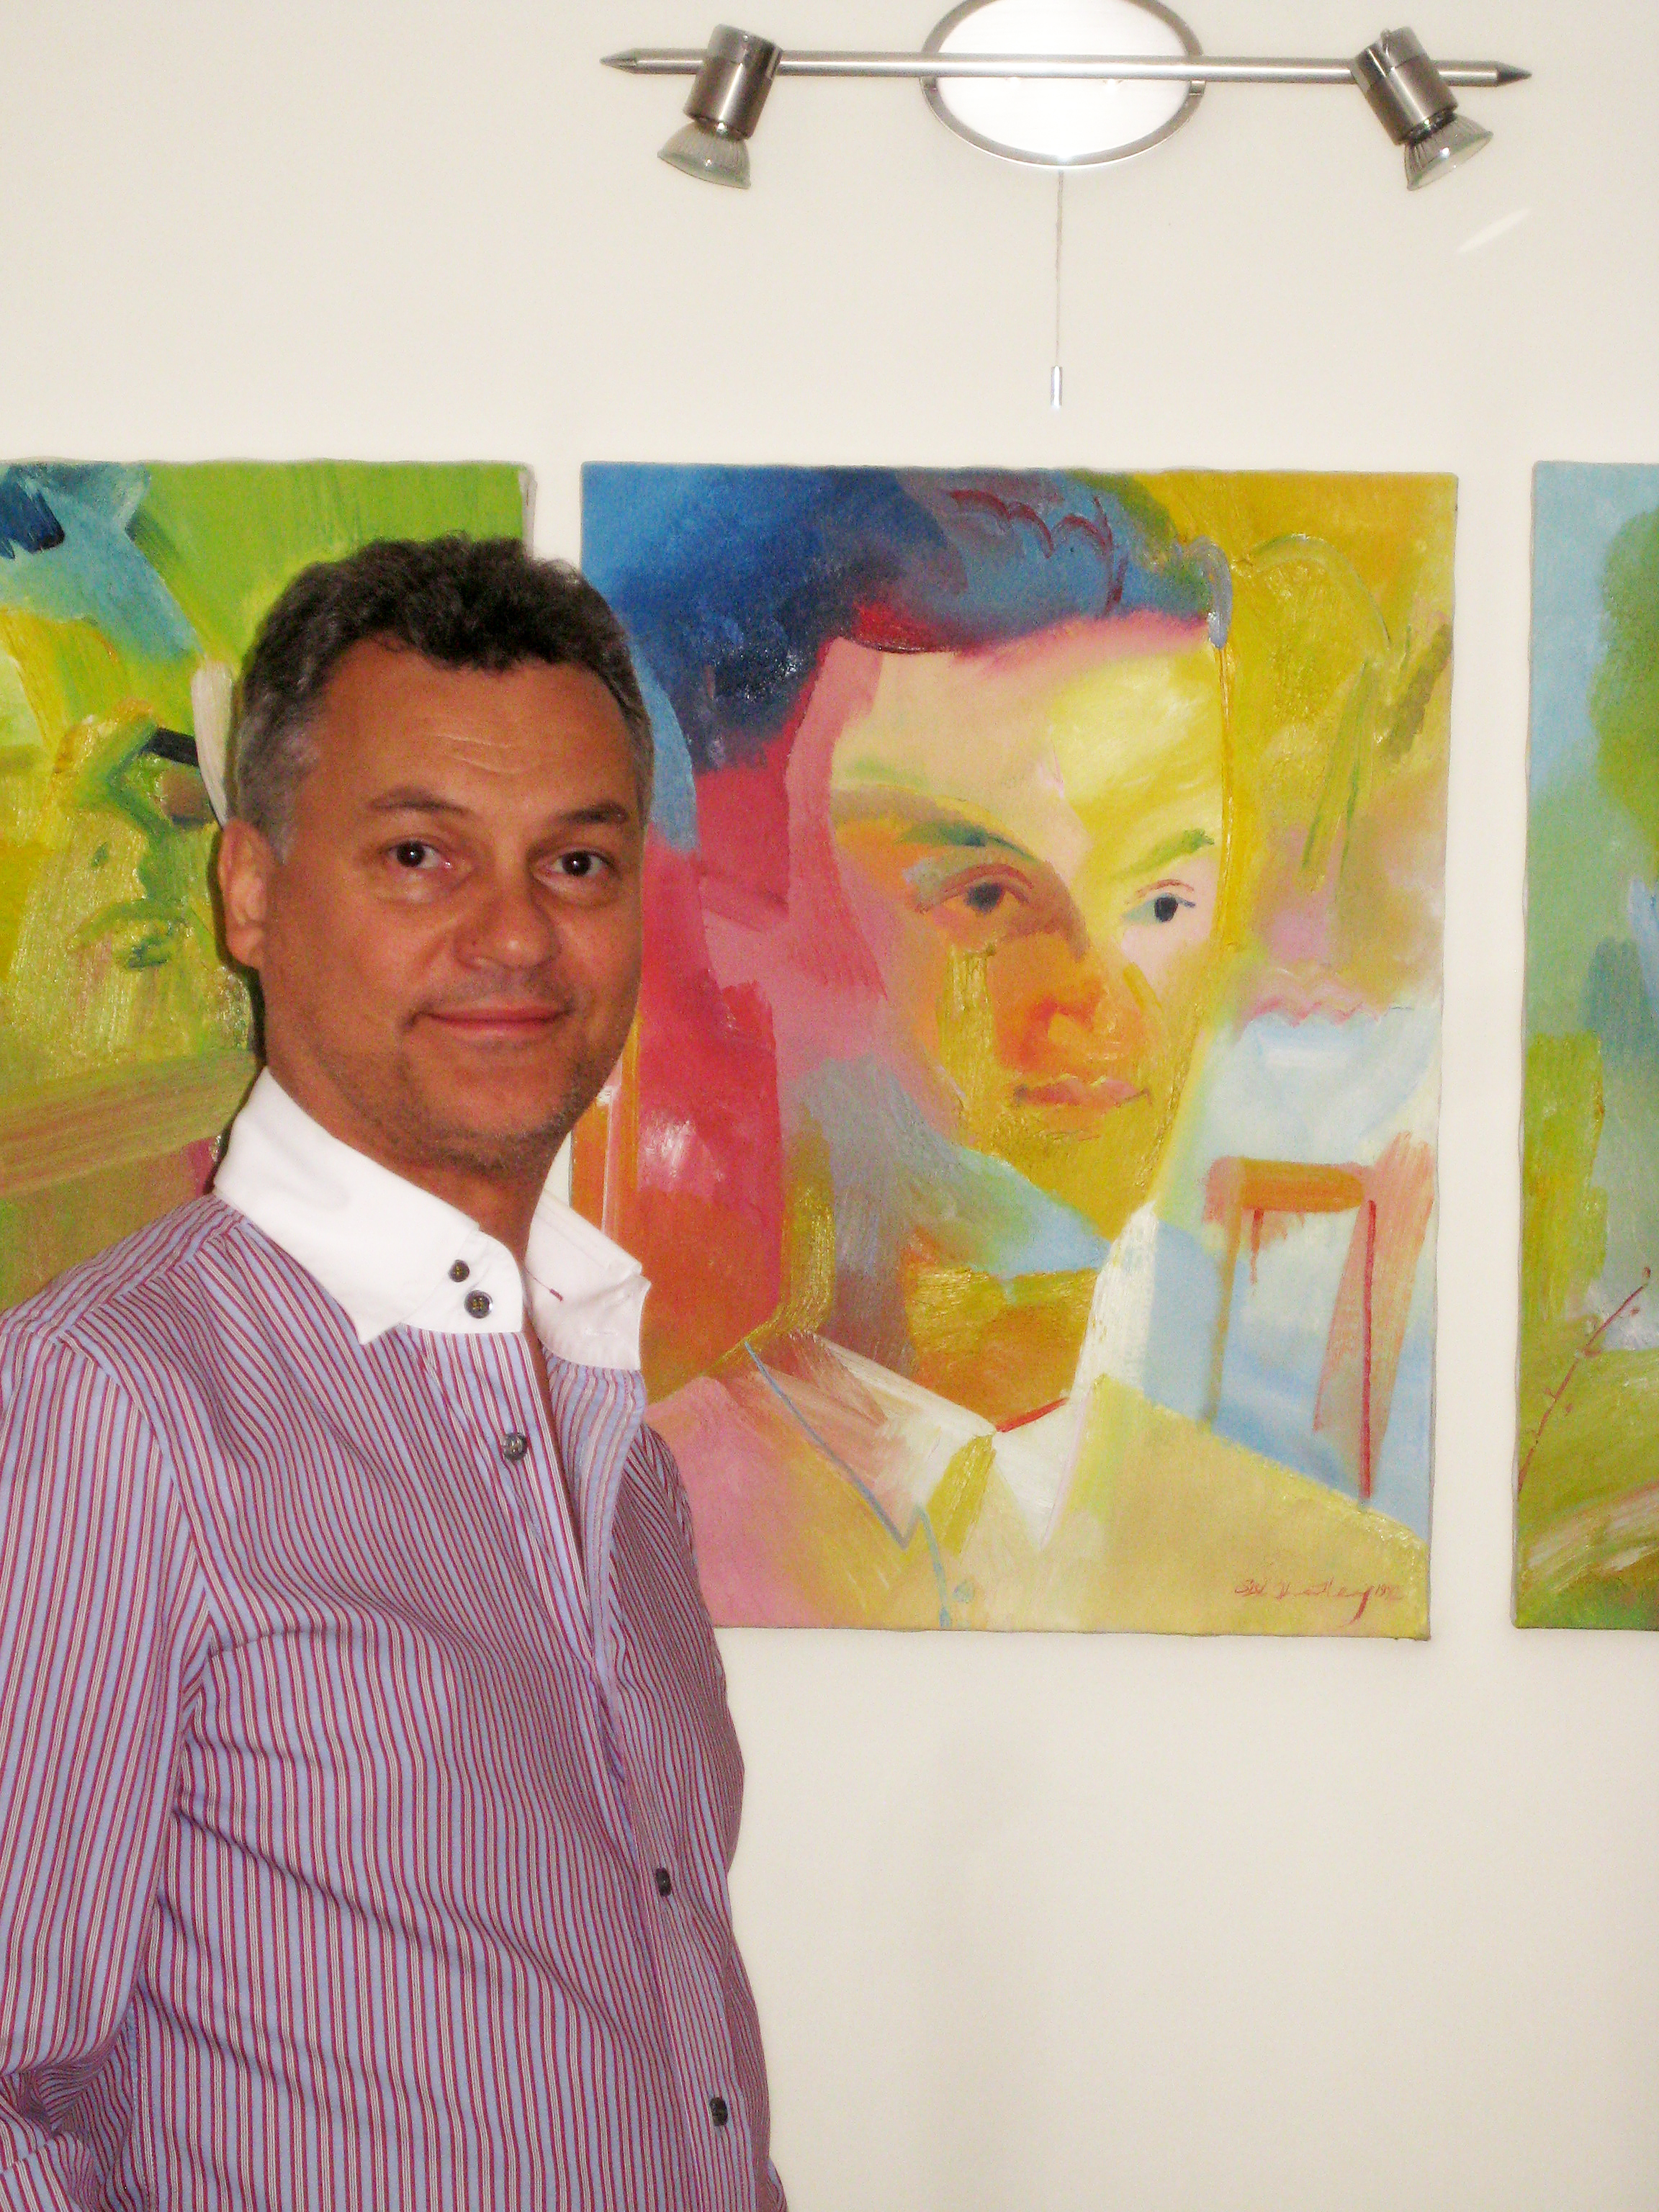 Casting Director Paul De Freitas in 2002 with his 1992 portrait by Stephen B. Whatley